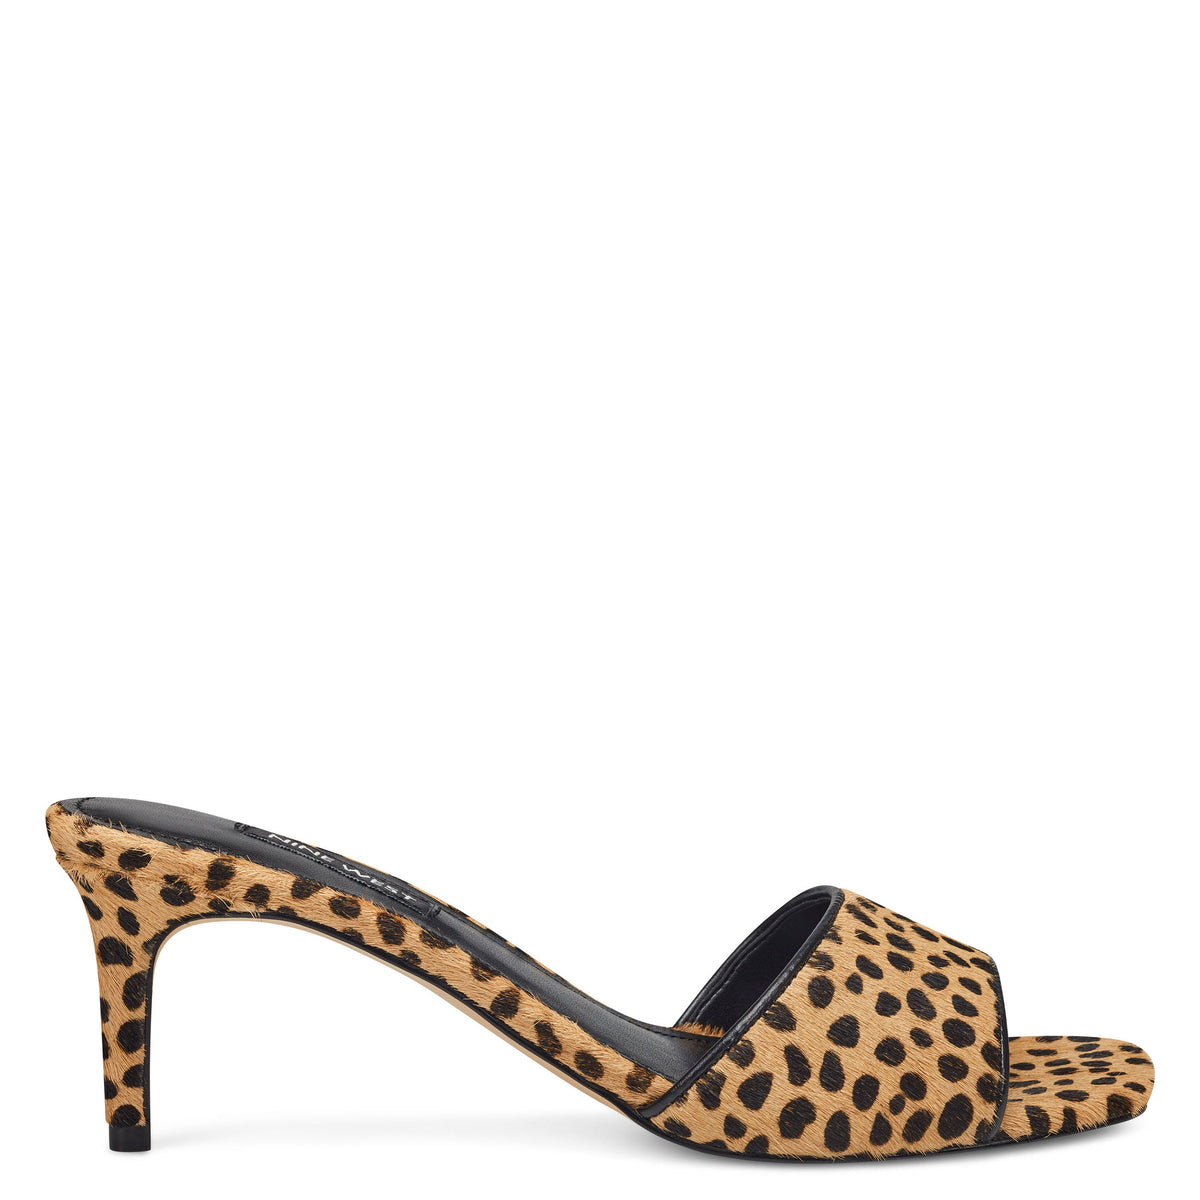 marina-heeled-slide-sandals-in-spotted-leopard